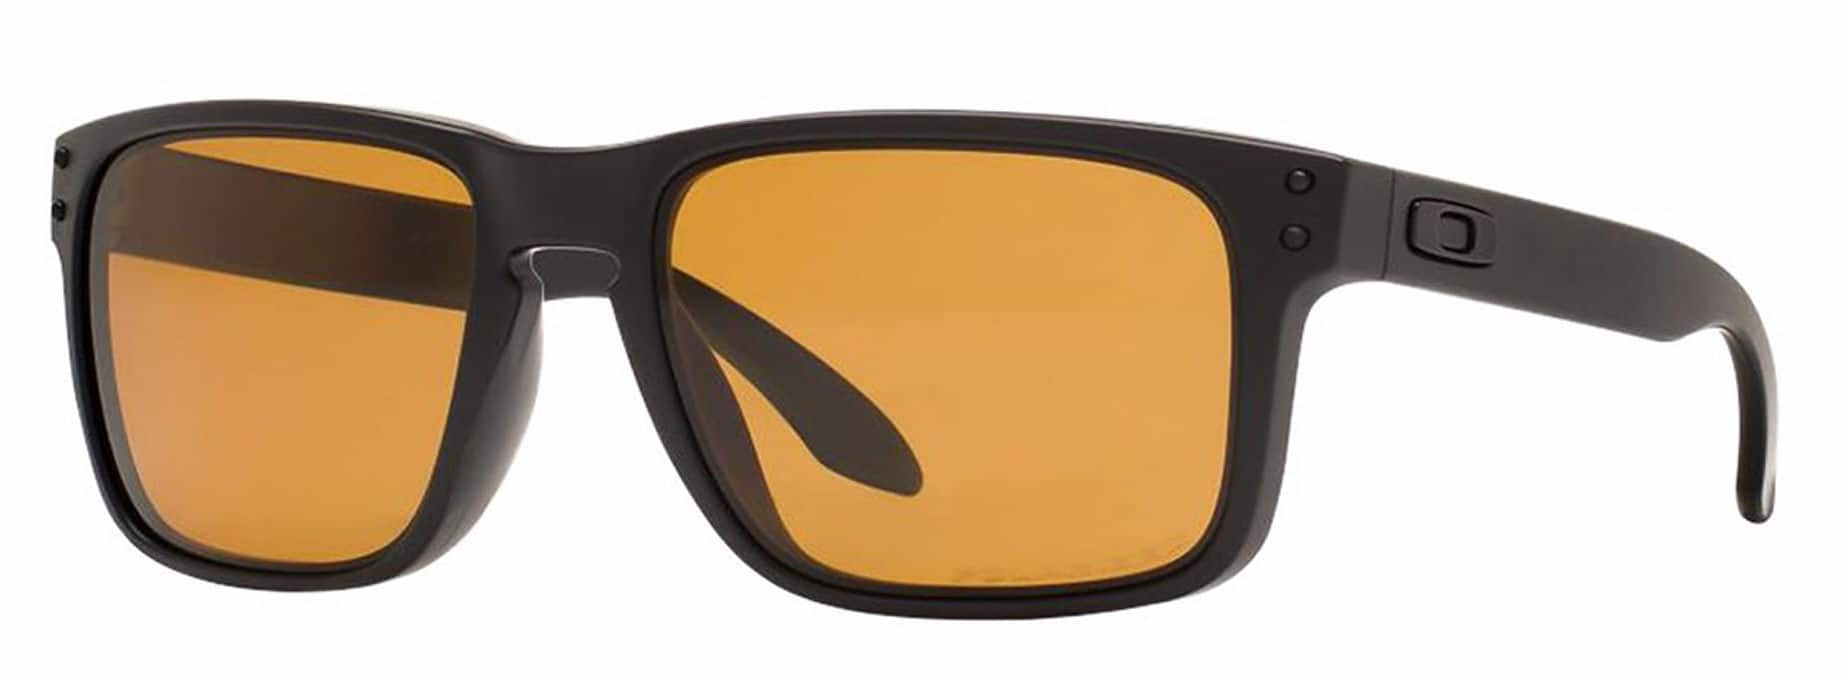 f04d447dc3 Oakley Holbrook Polarized Sunglasses in Matte Black Bronze  69 + free  shipping   BJs  69.99